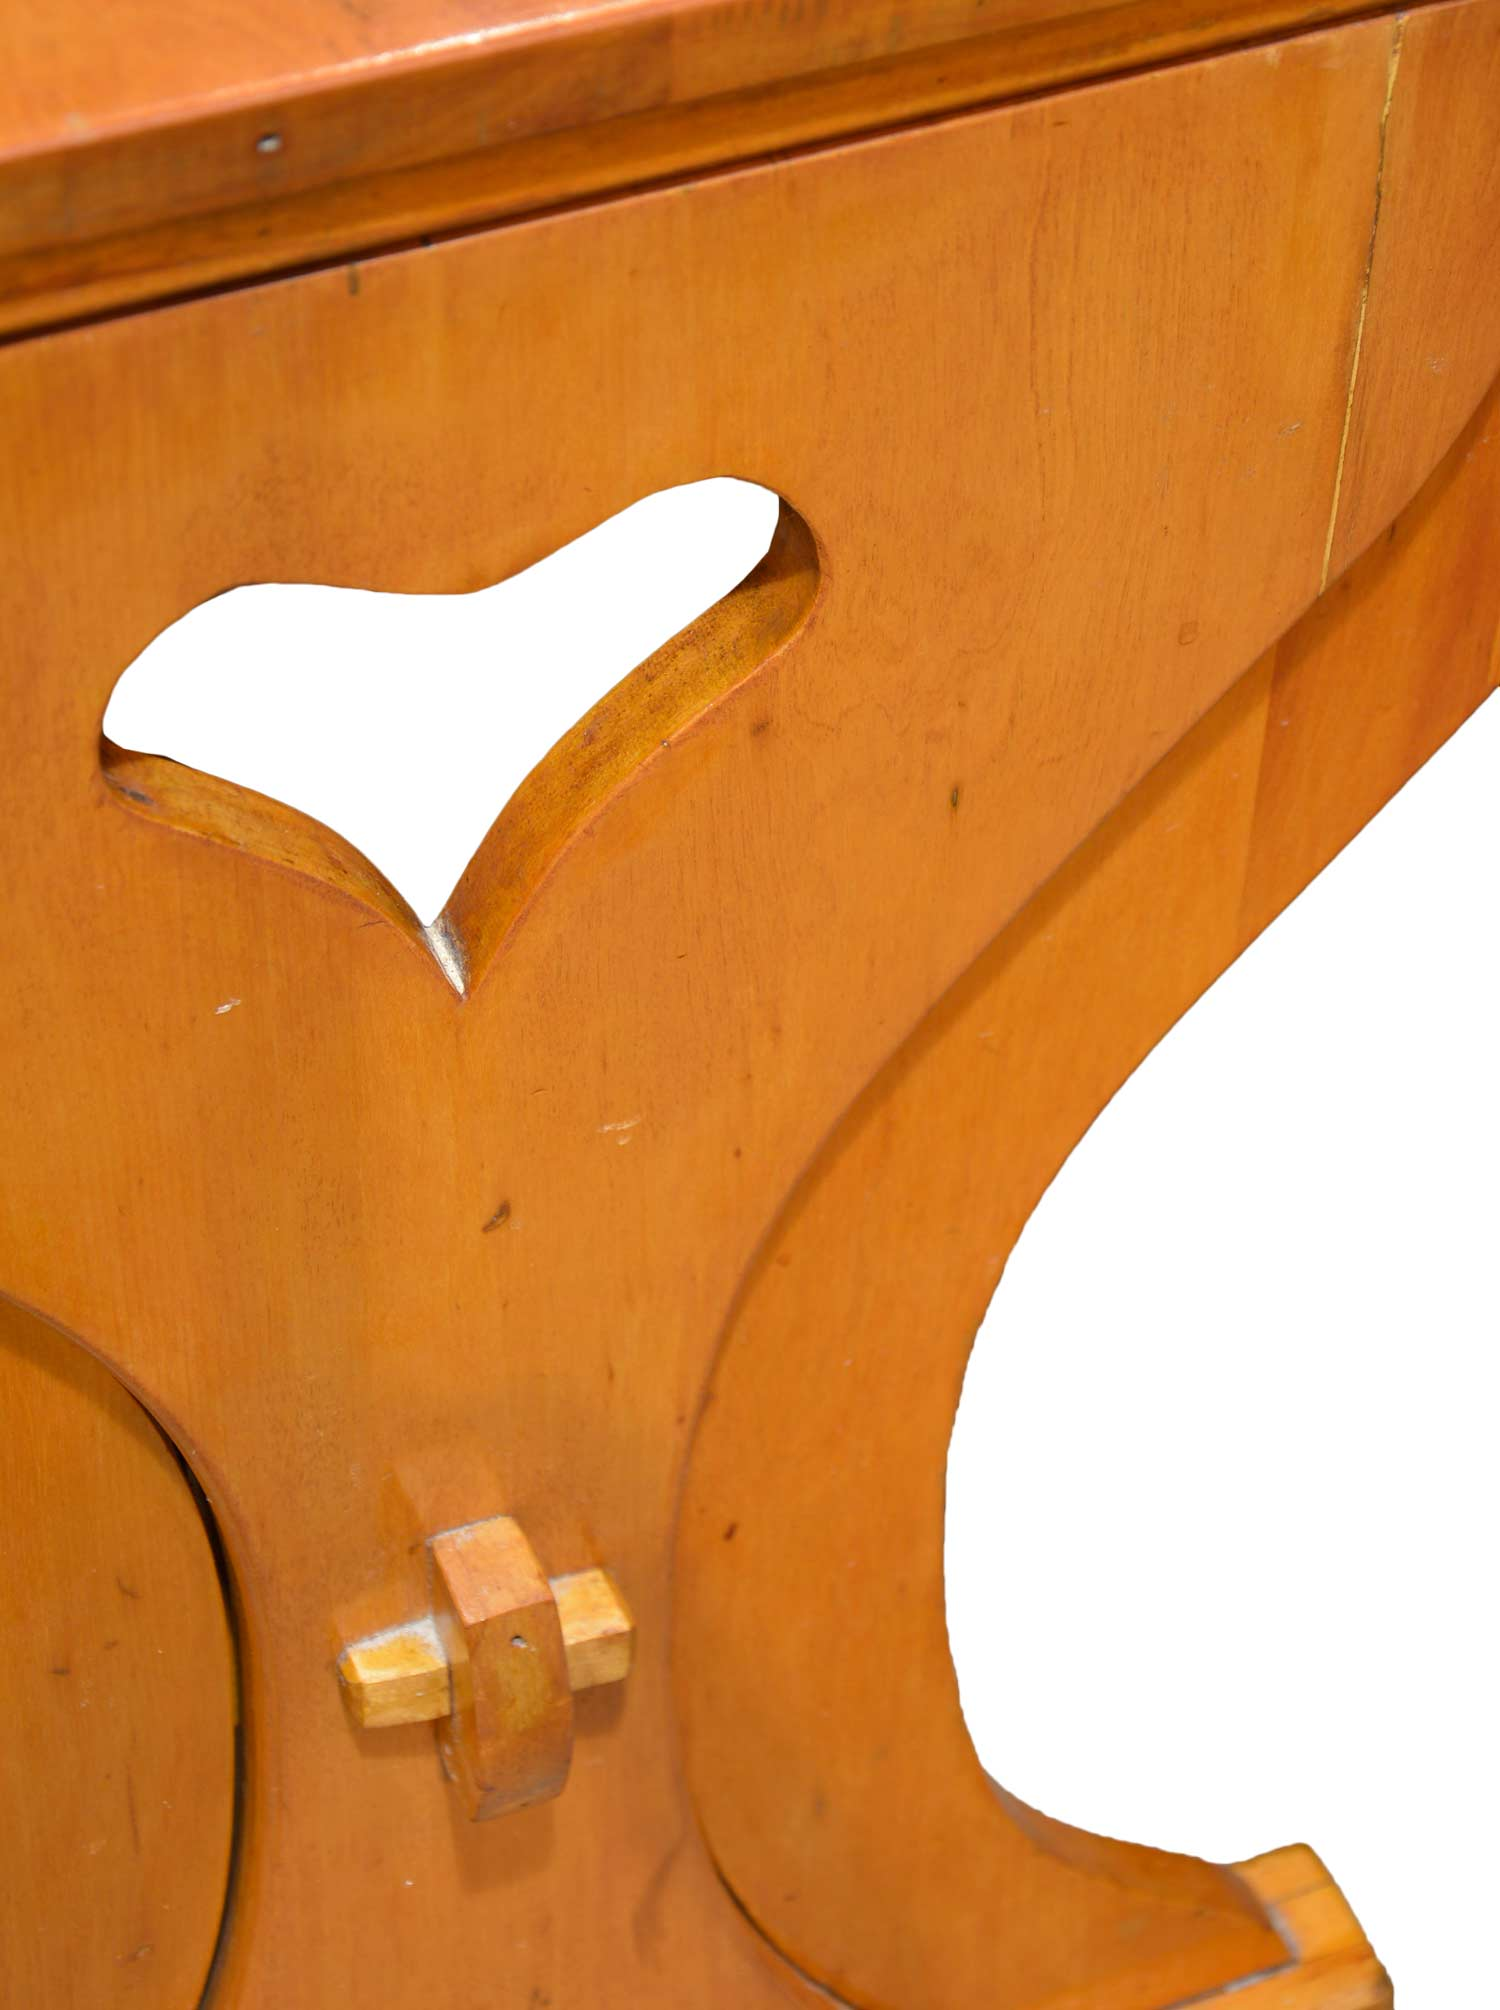 46043-maple-breakfast-nook-with-pull-out-table-detail.jpg